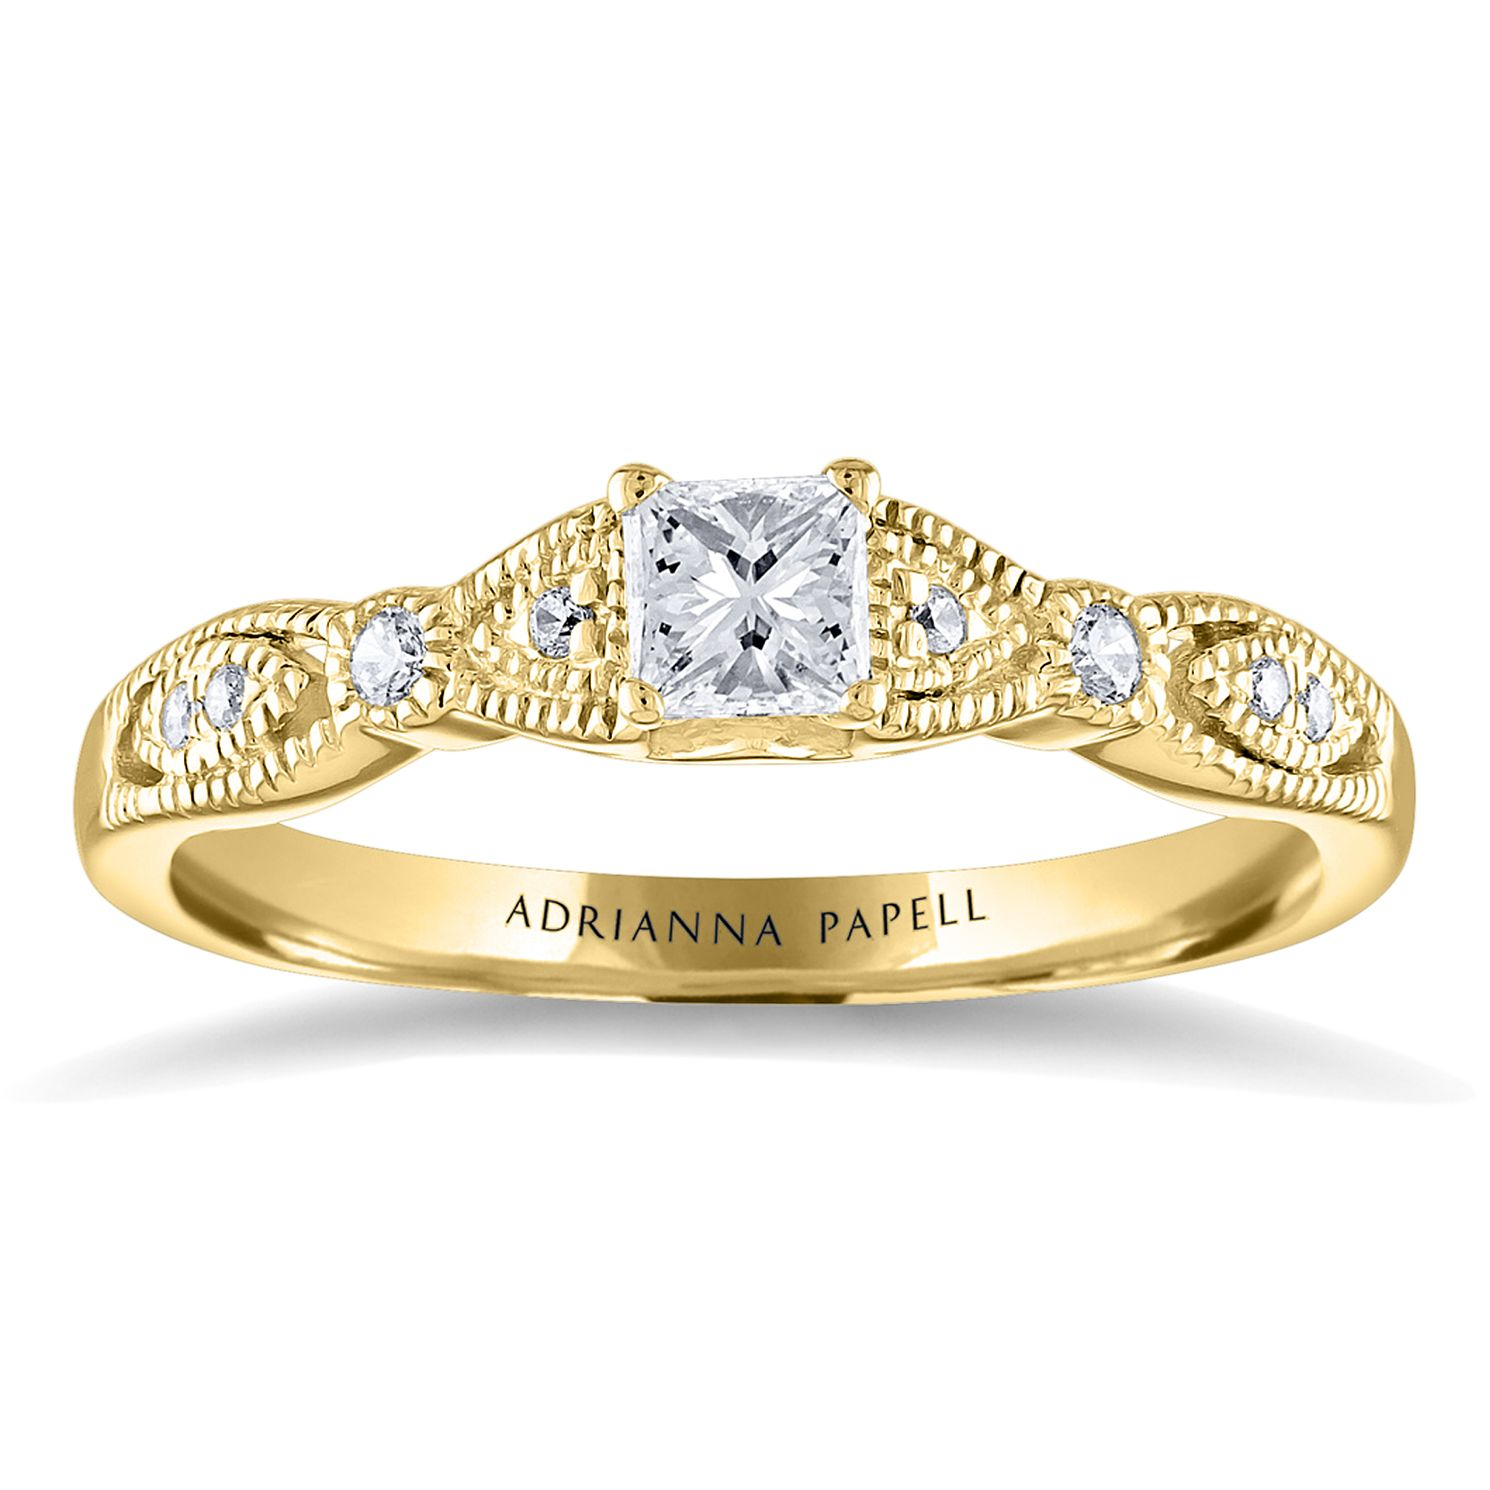 Adrianna Papell 14ct Yellow Gold 0.34ct Diamond - Product number 2249766